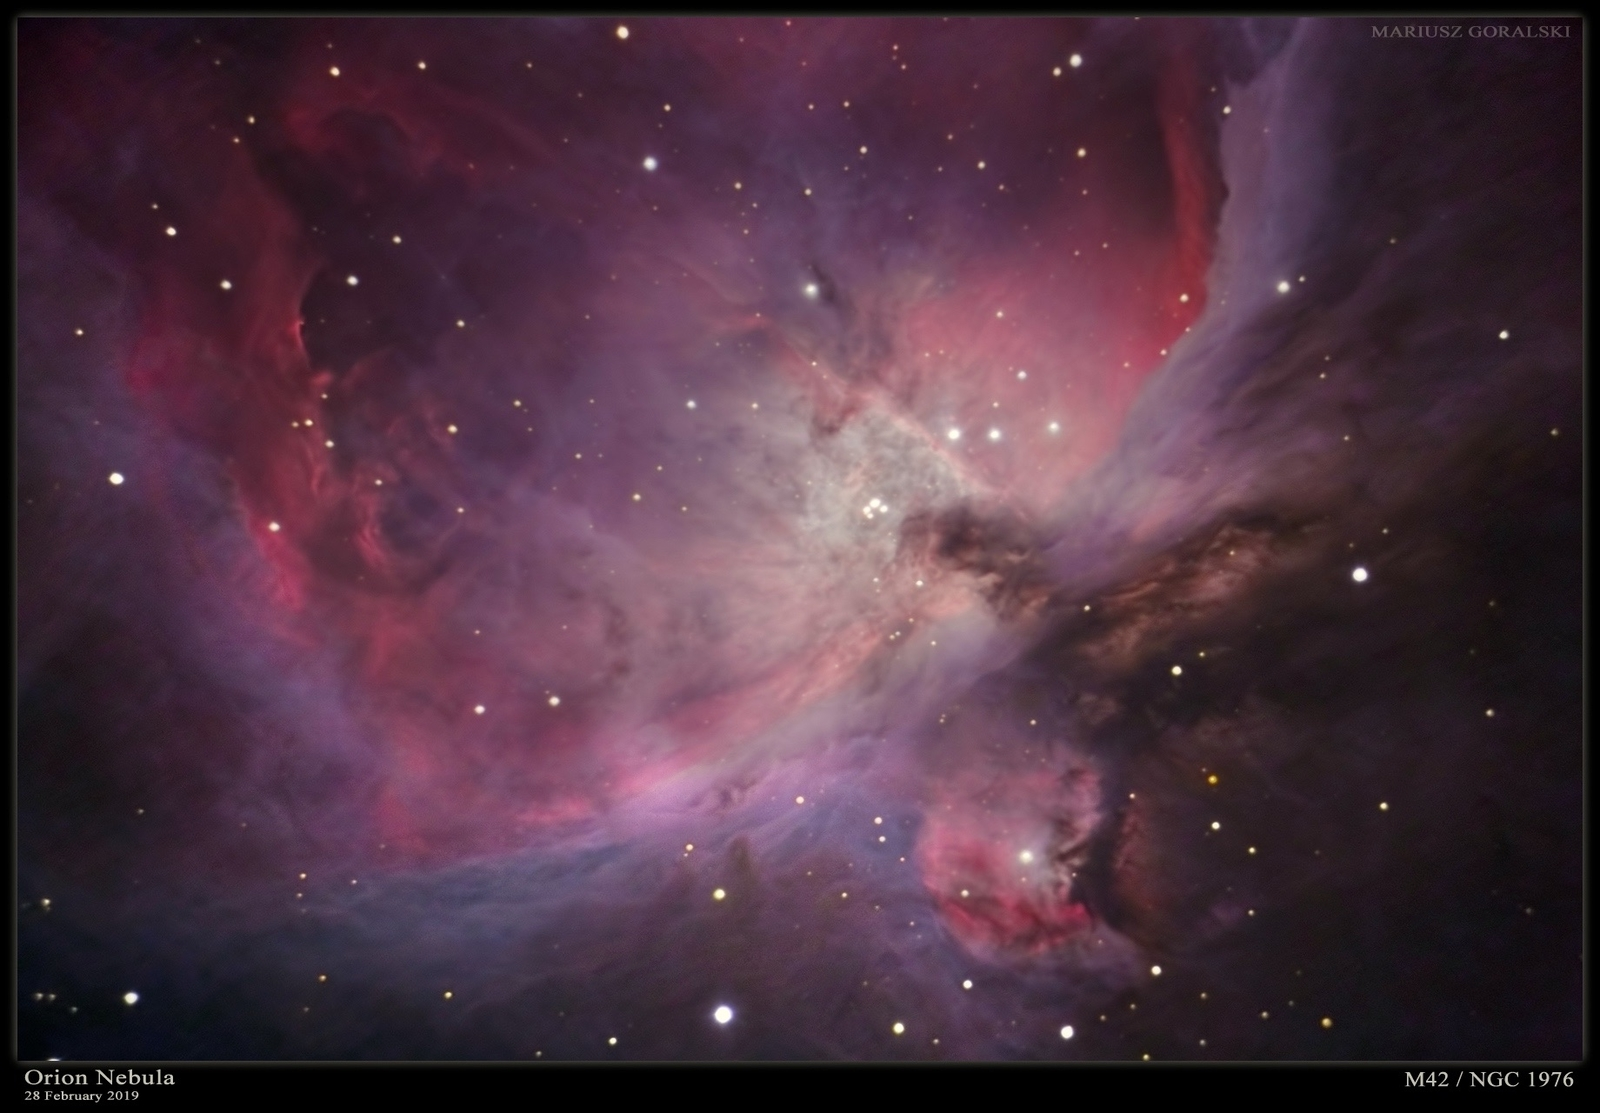 Orion Nebula F10 - 28 February 2019